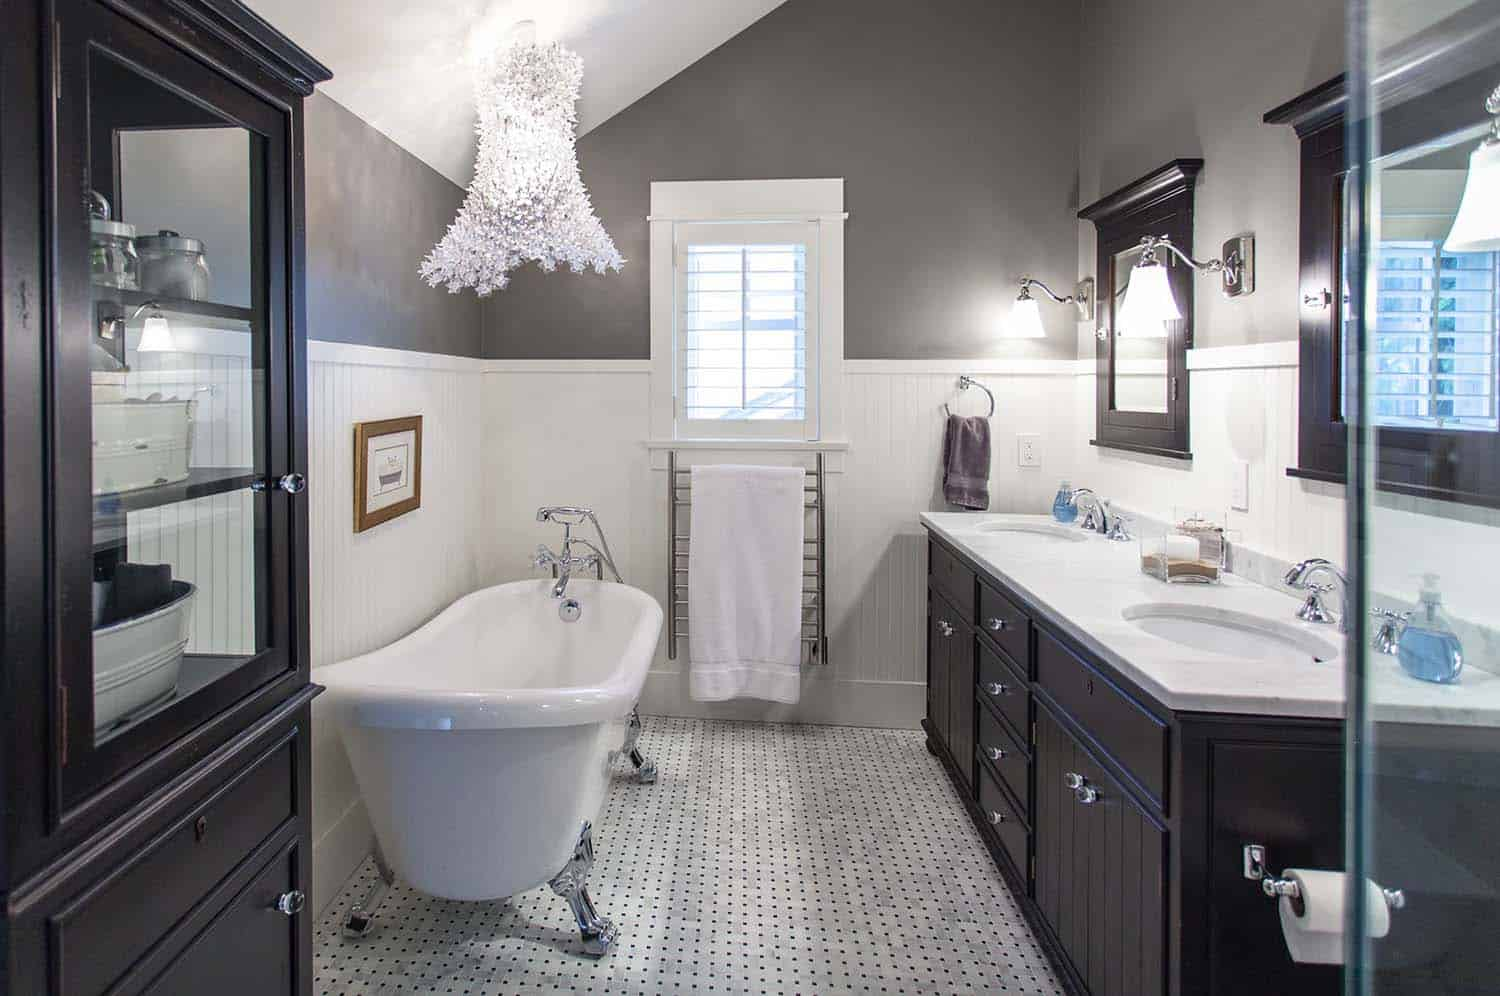 25 incredibly stylish black and white bathroom ideas to - White bathroom ideas photo gallery ...